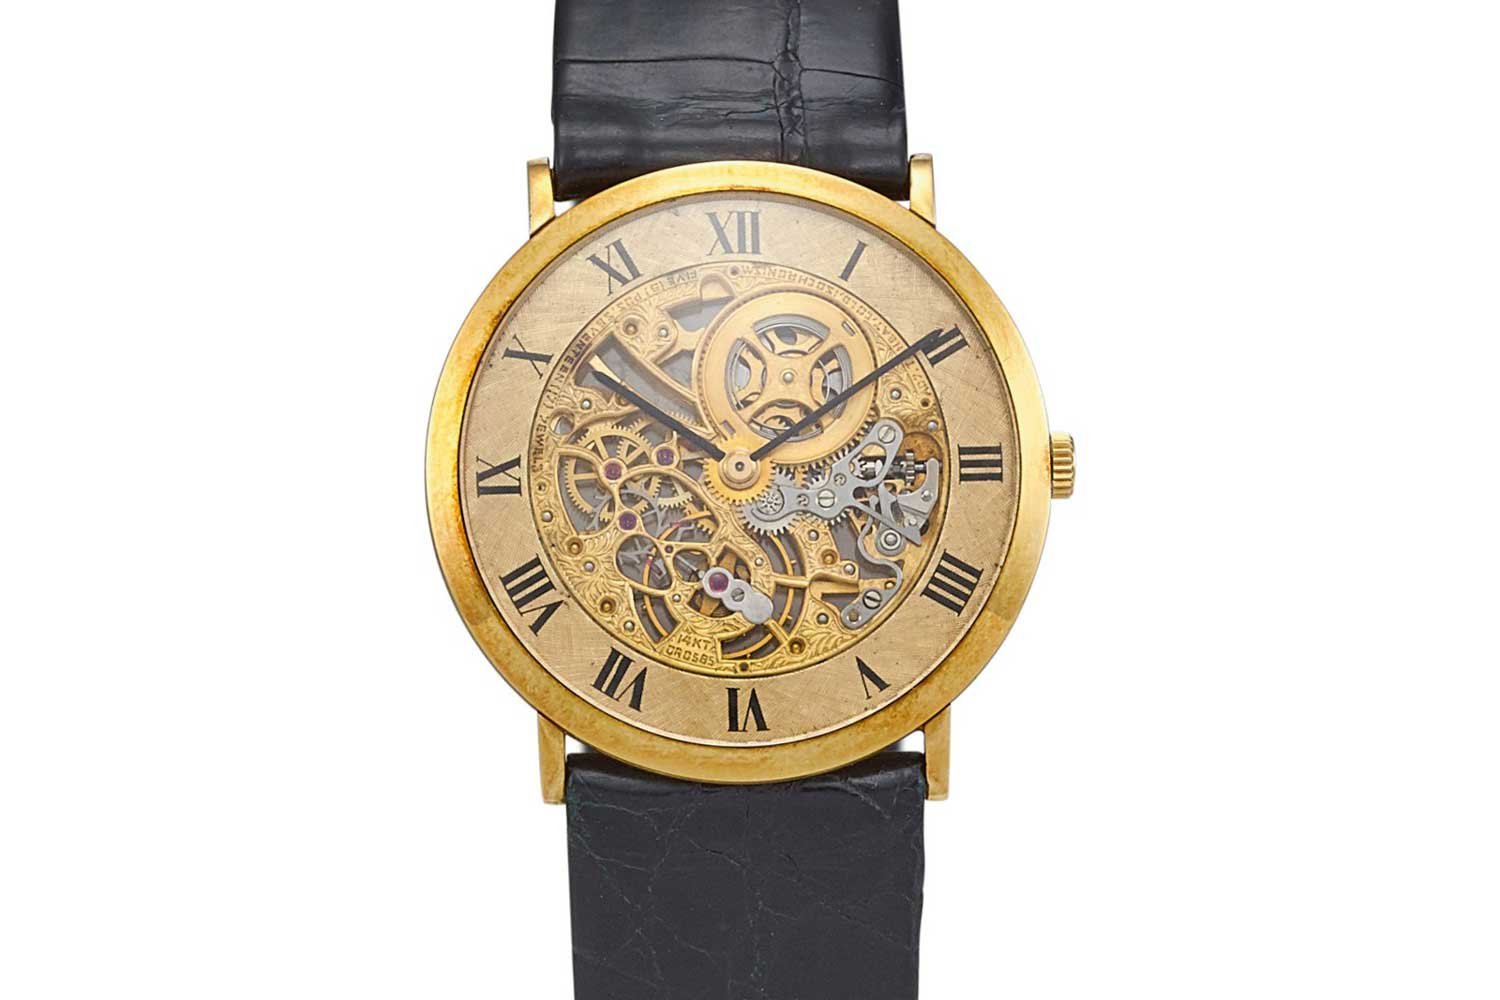 Audemars Piguet - An ultra-thin yellow gold skeletonised wristwatch from 1980